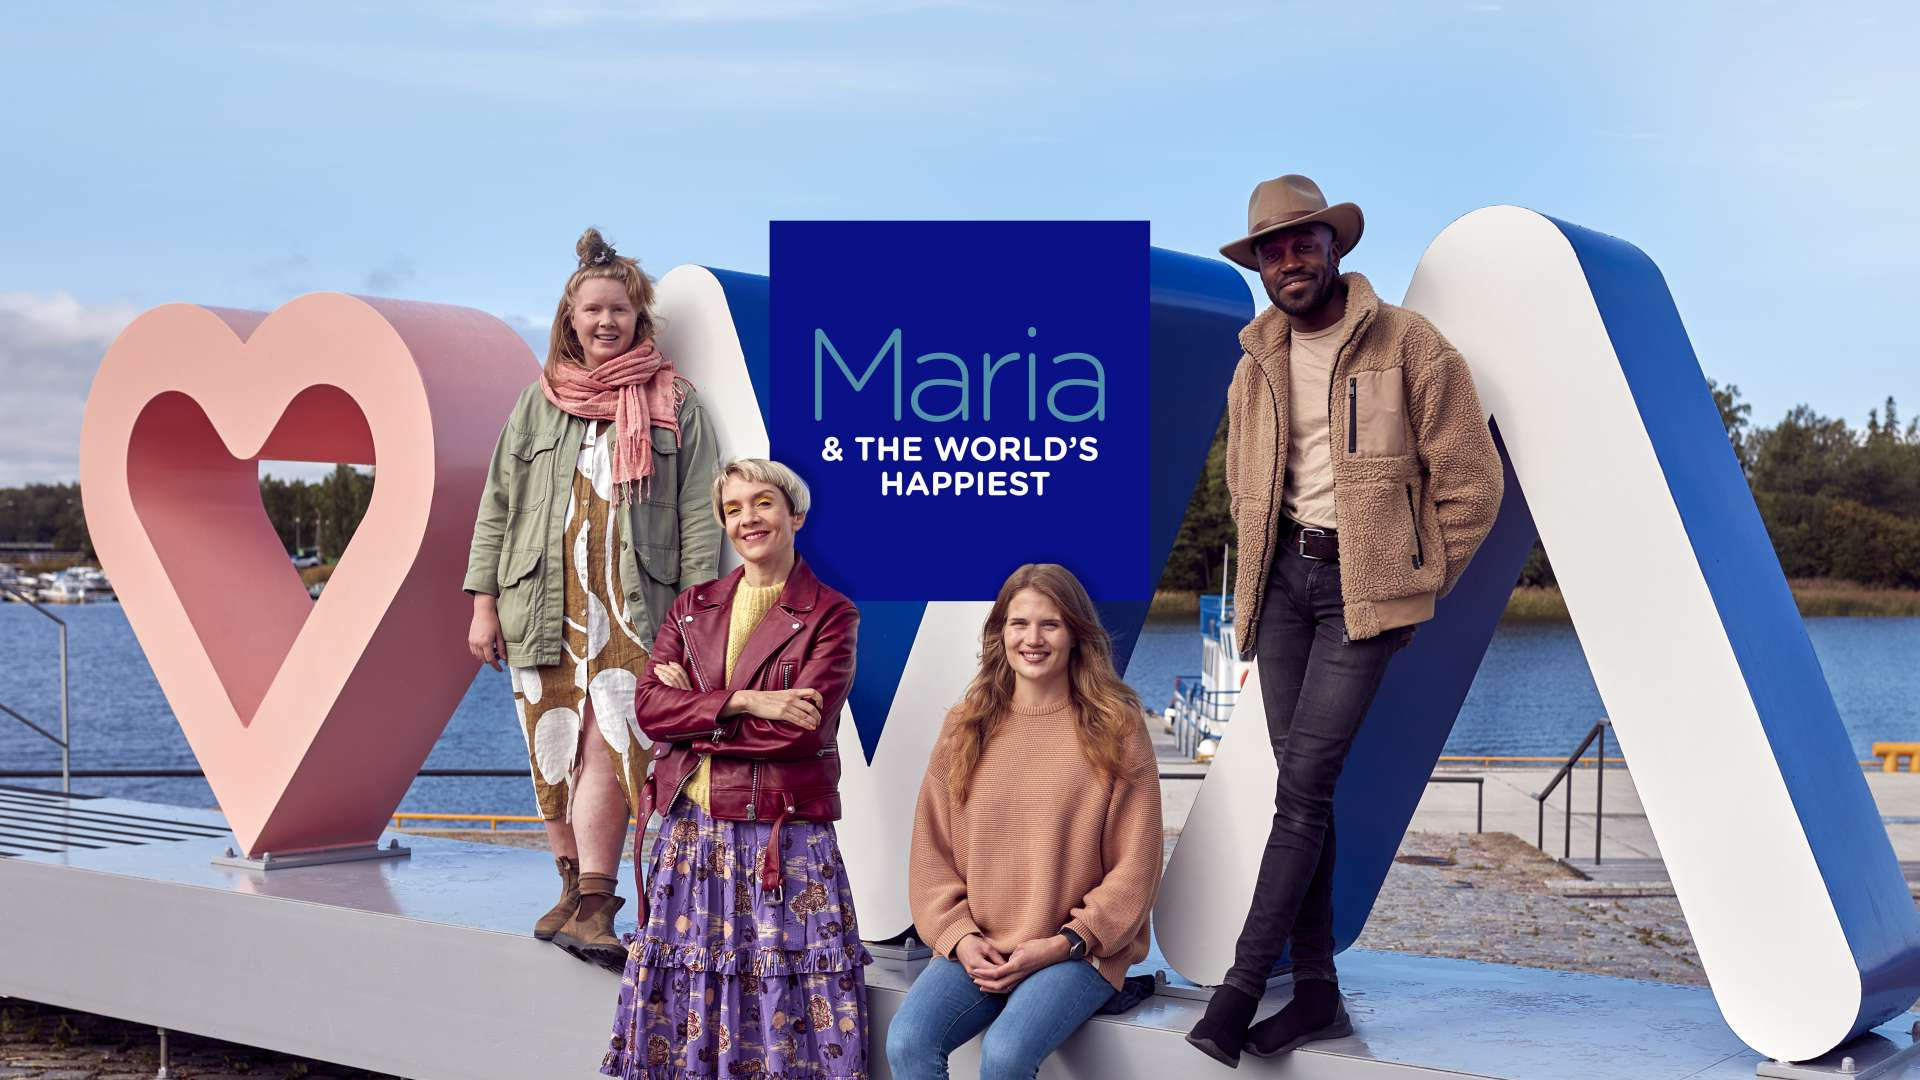 Happies person in the world finalists and maria veitola